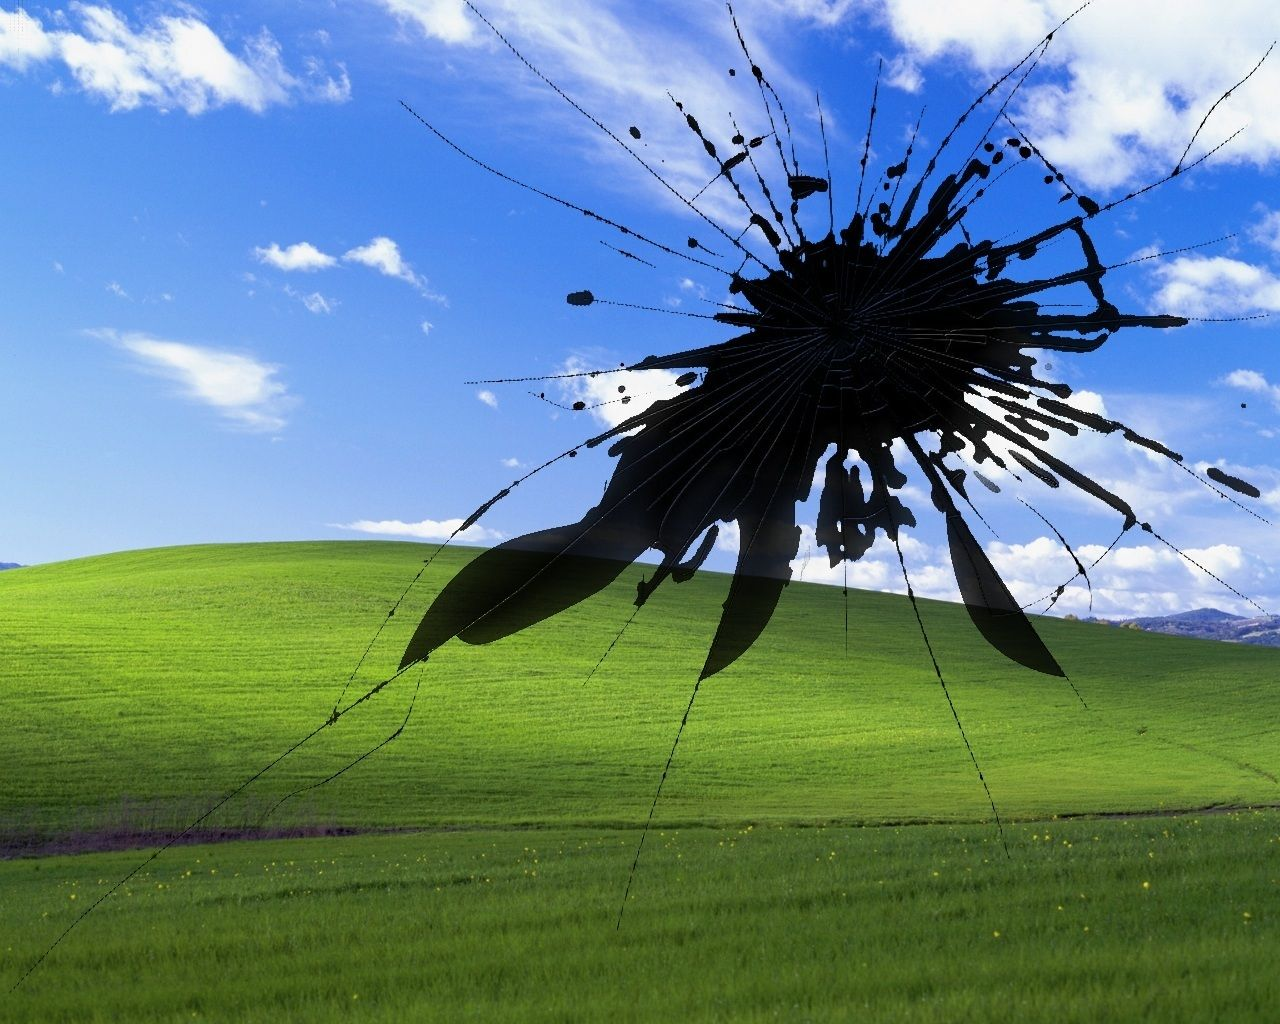 Windows xp wallpaper bliss download